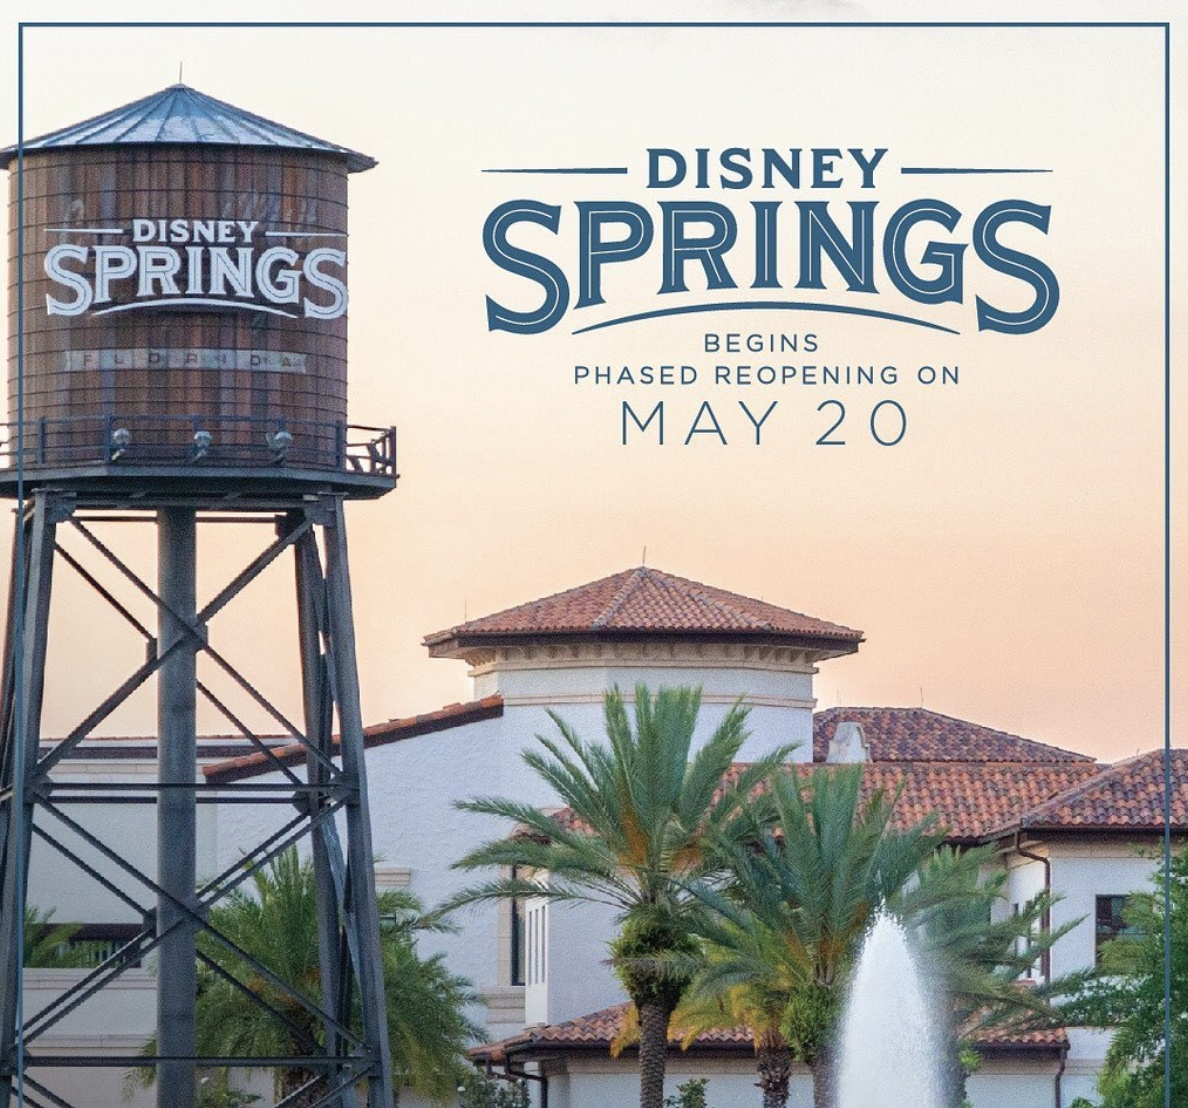 Disney Springs of Orlando